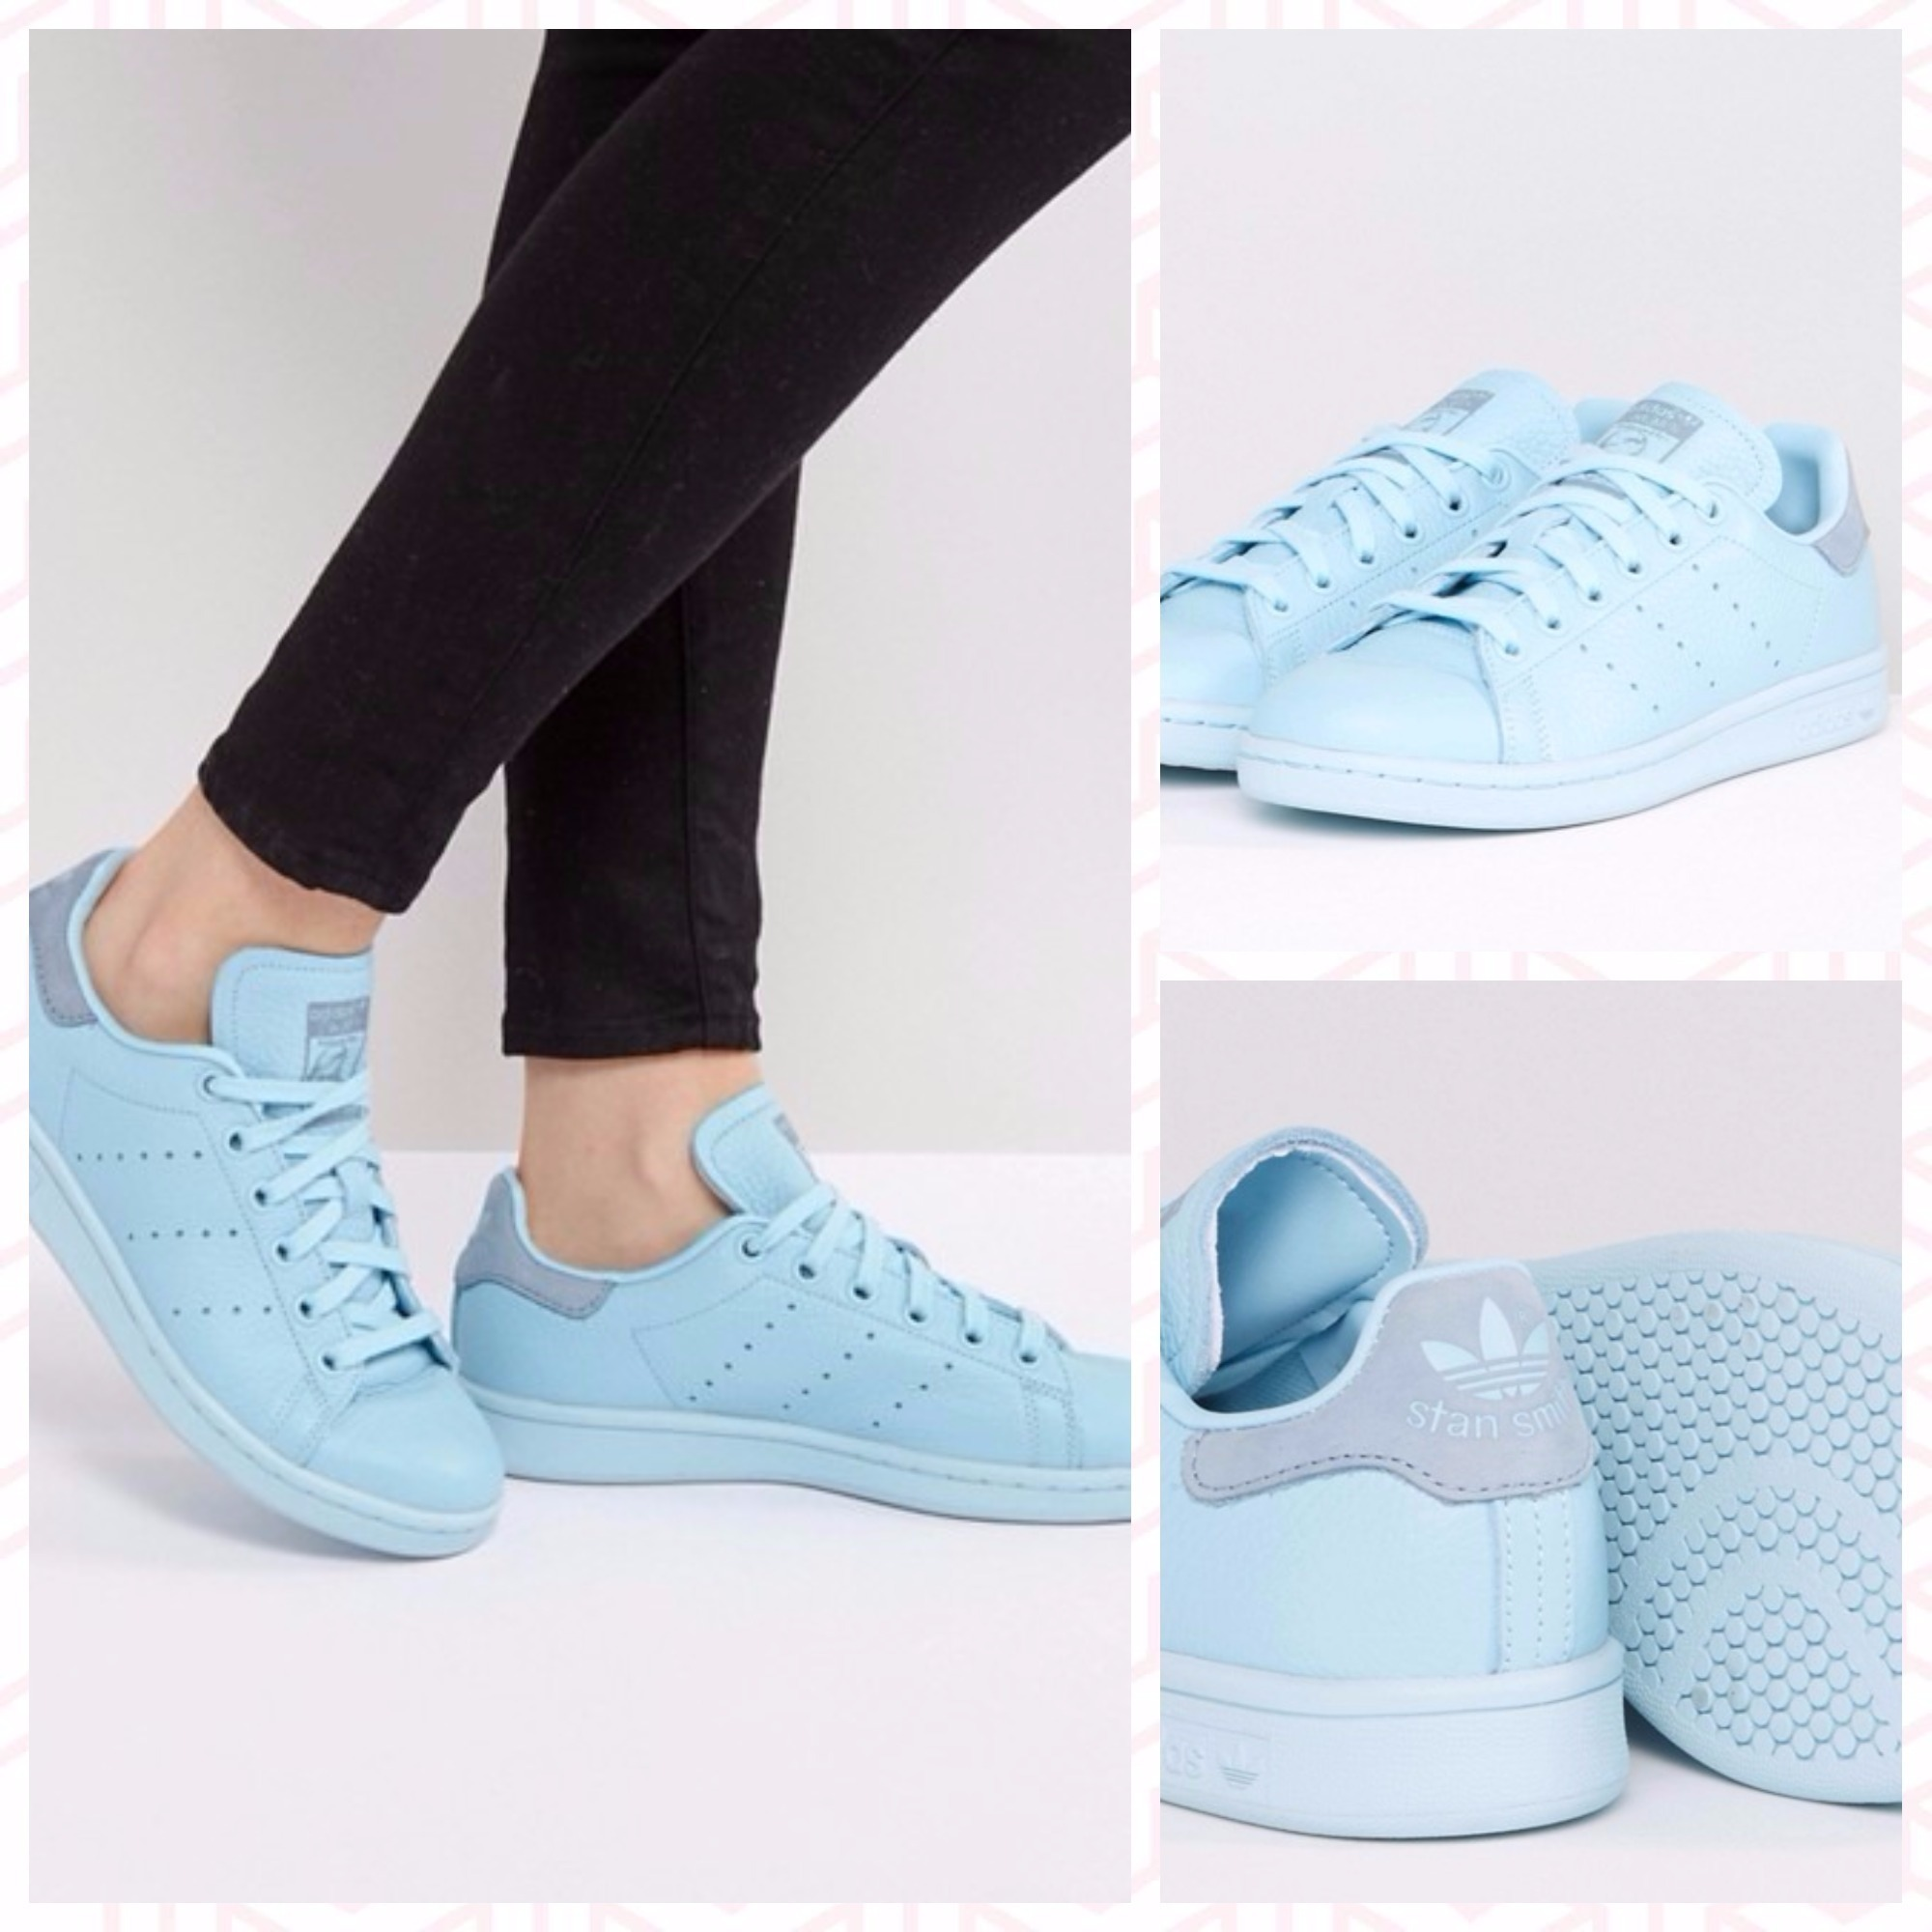 【adidas Originals】Stan Smith ★Icy Blue スニーカー